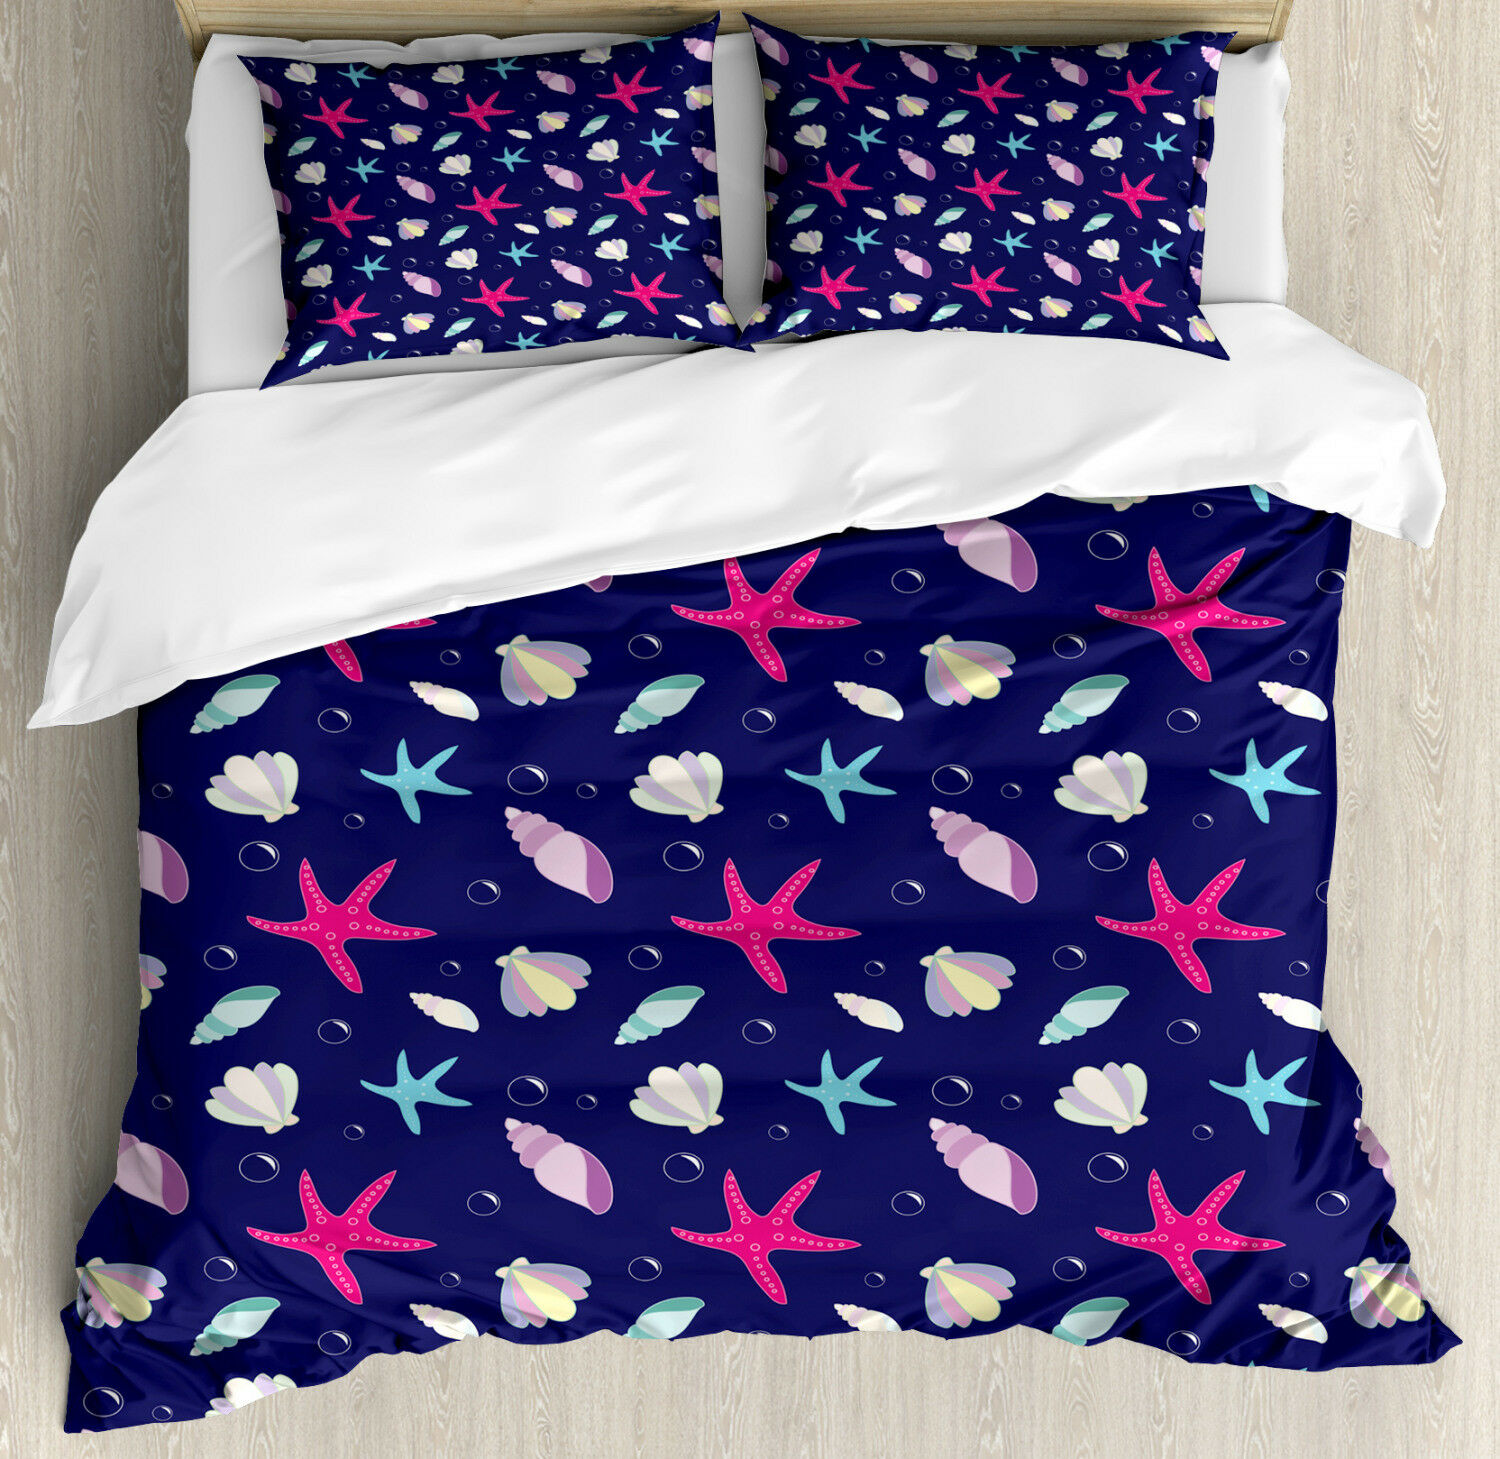 Ethereal Sky Print Navy and Blush Quilted Bedspread /& Pillow Shams Set